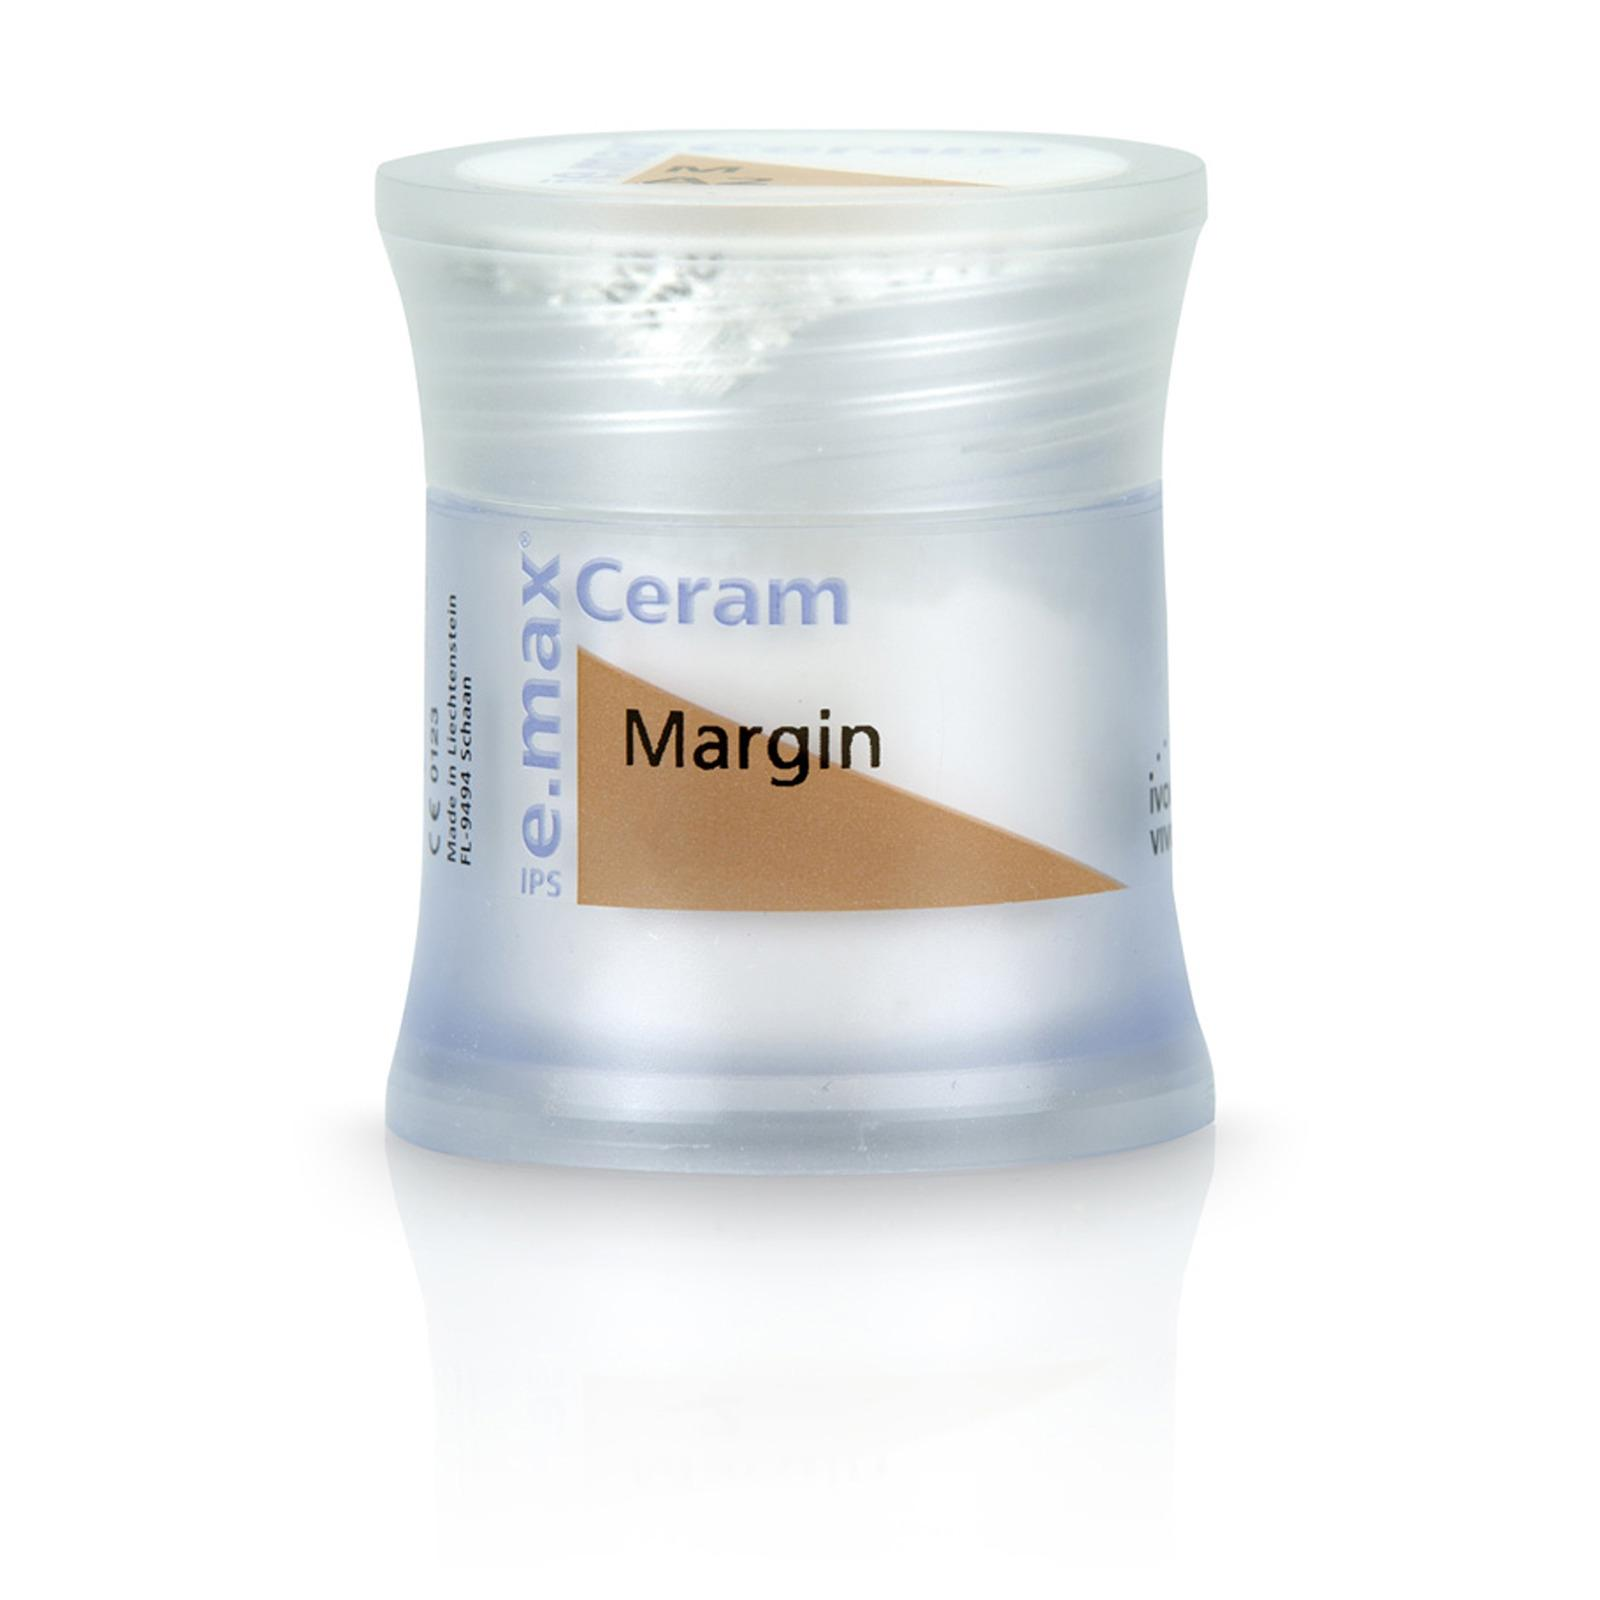 IPS e.max Ceram Margin 20 g 240